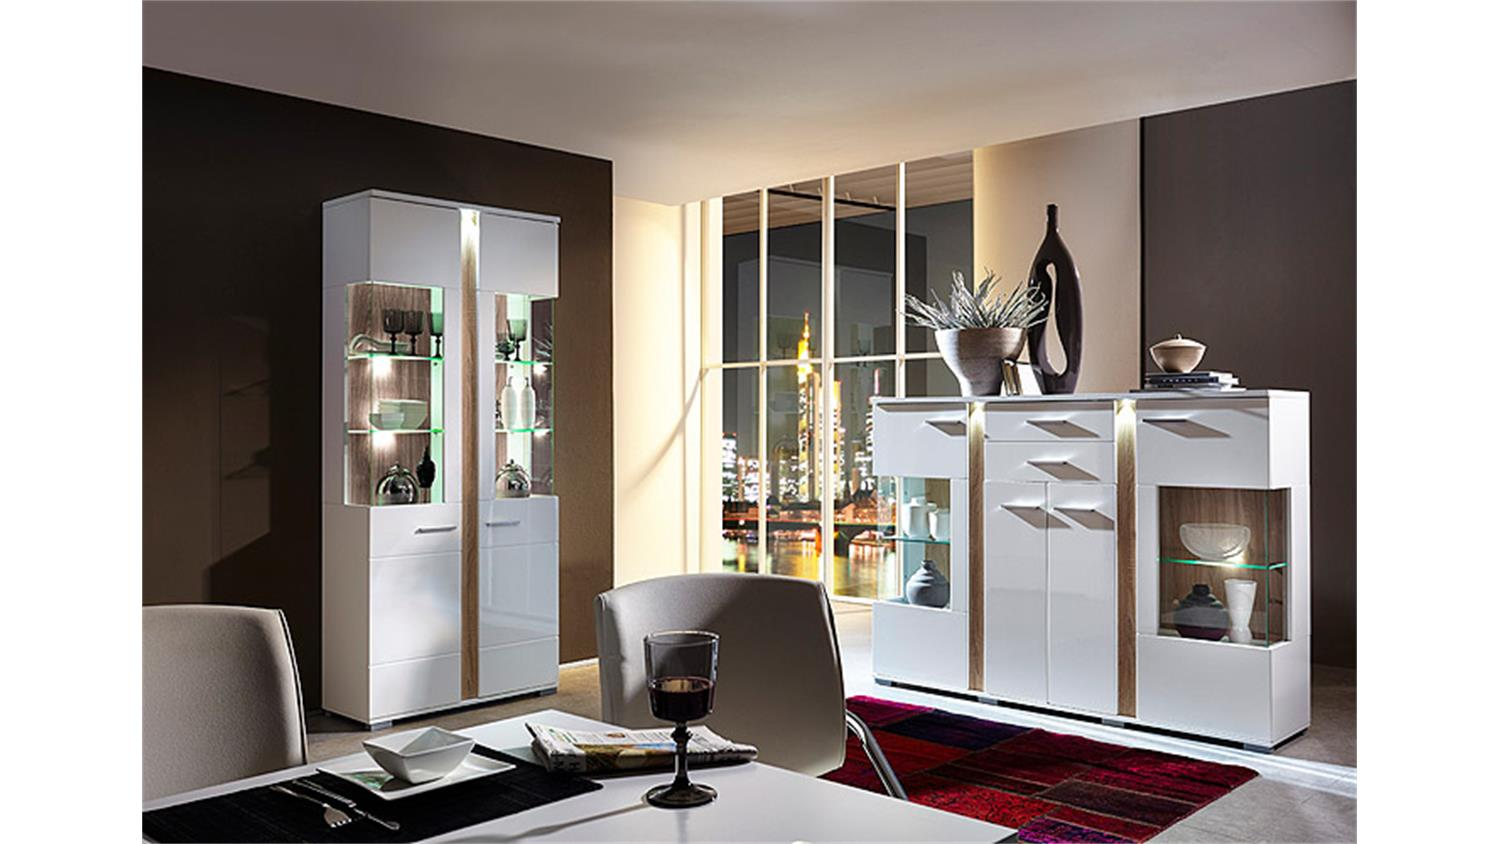 vitrine spot wei hochglanz sonoma eiche s gerau hell led. Black Bedroom Furniture Sets. Home Design Ideas